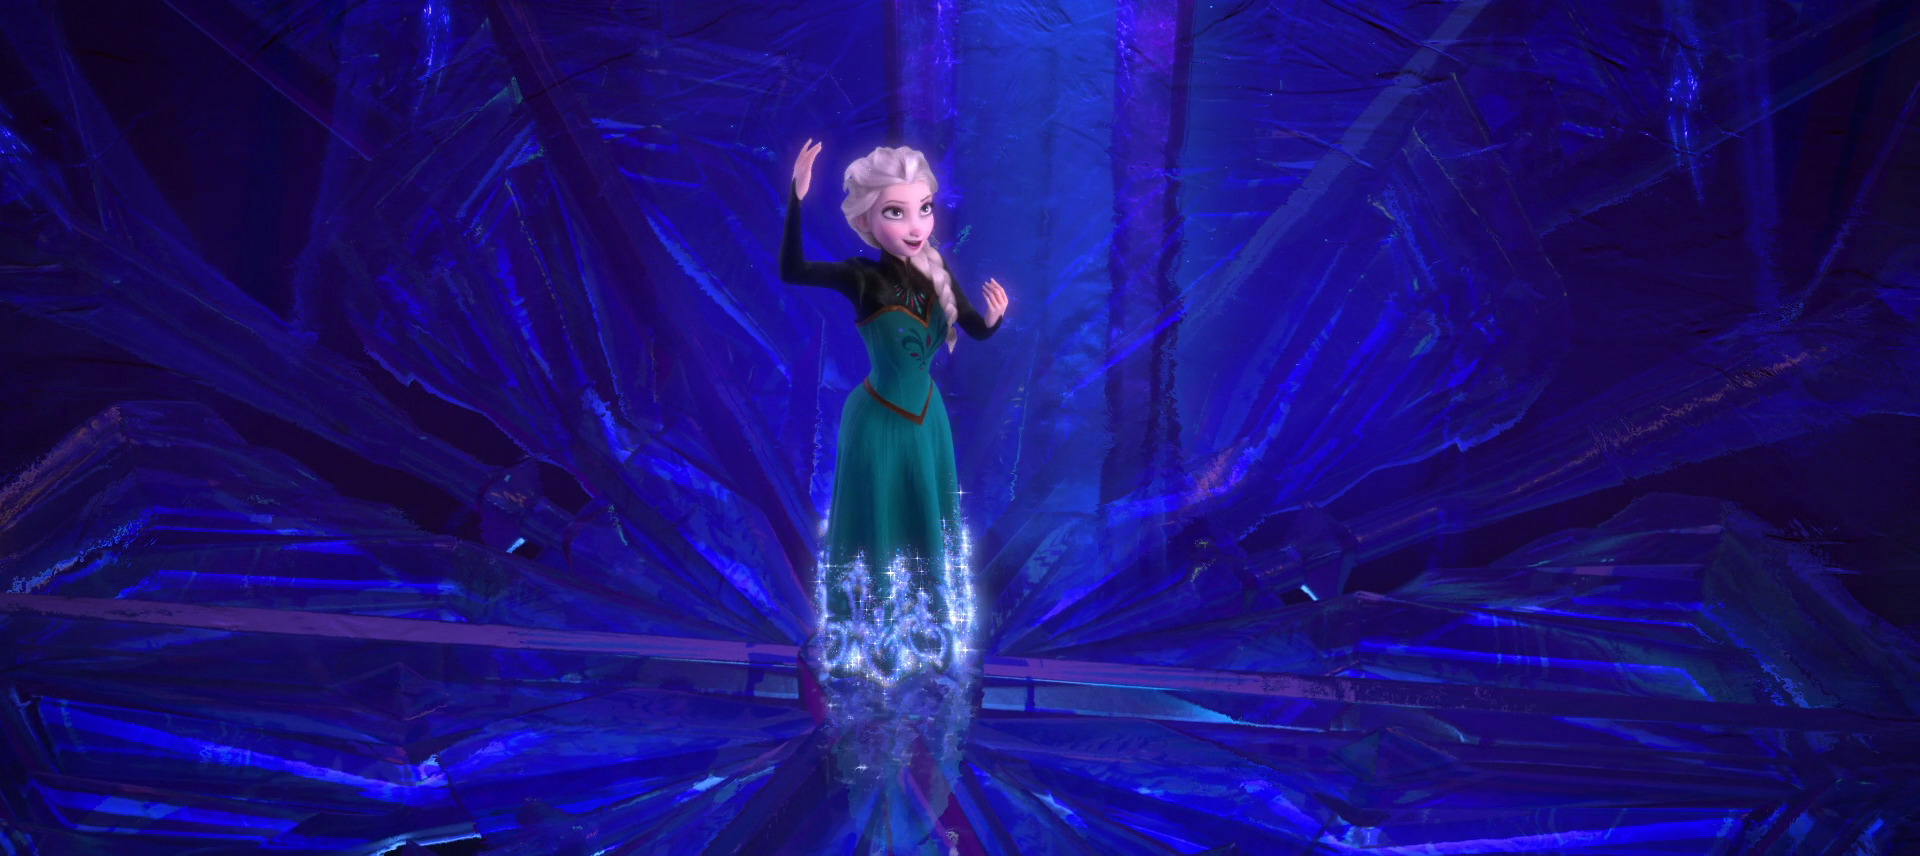 Let It Go Song Images Frozen Elsa HD Wallpaper And Background Photos